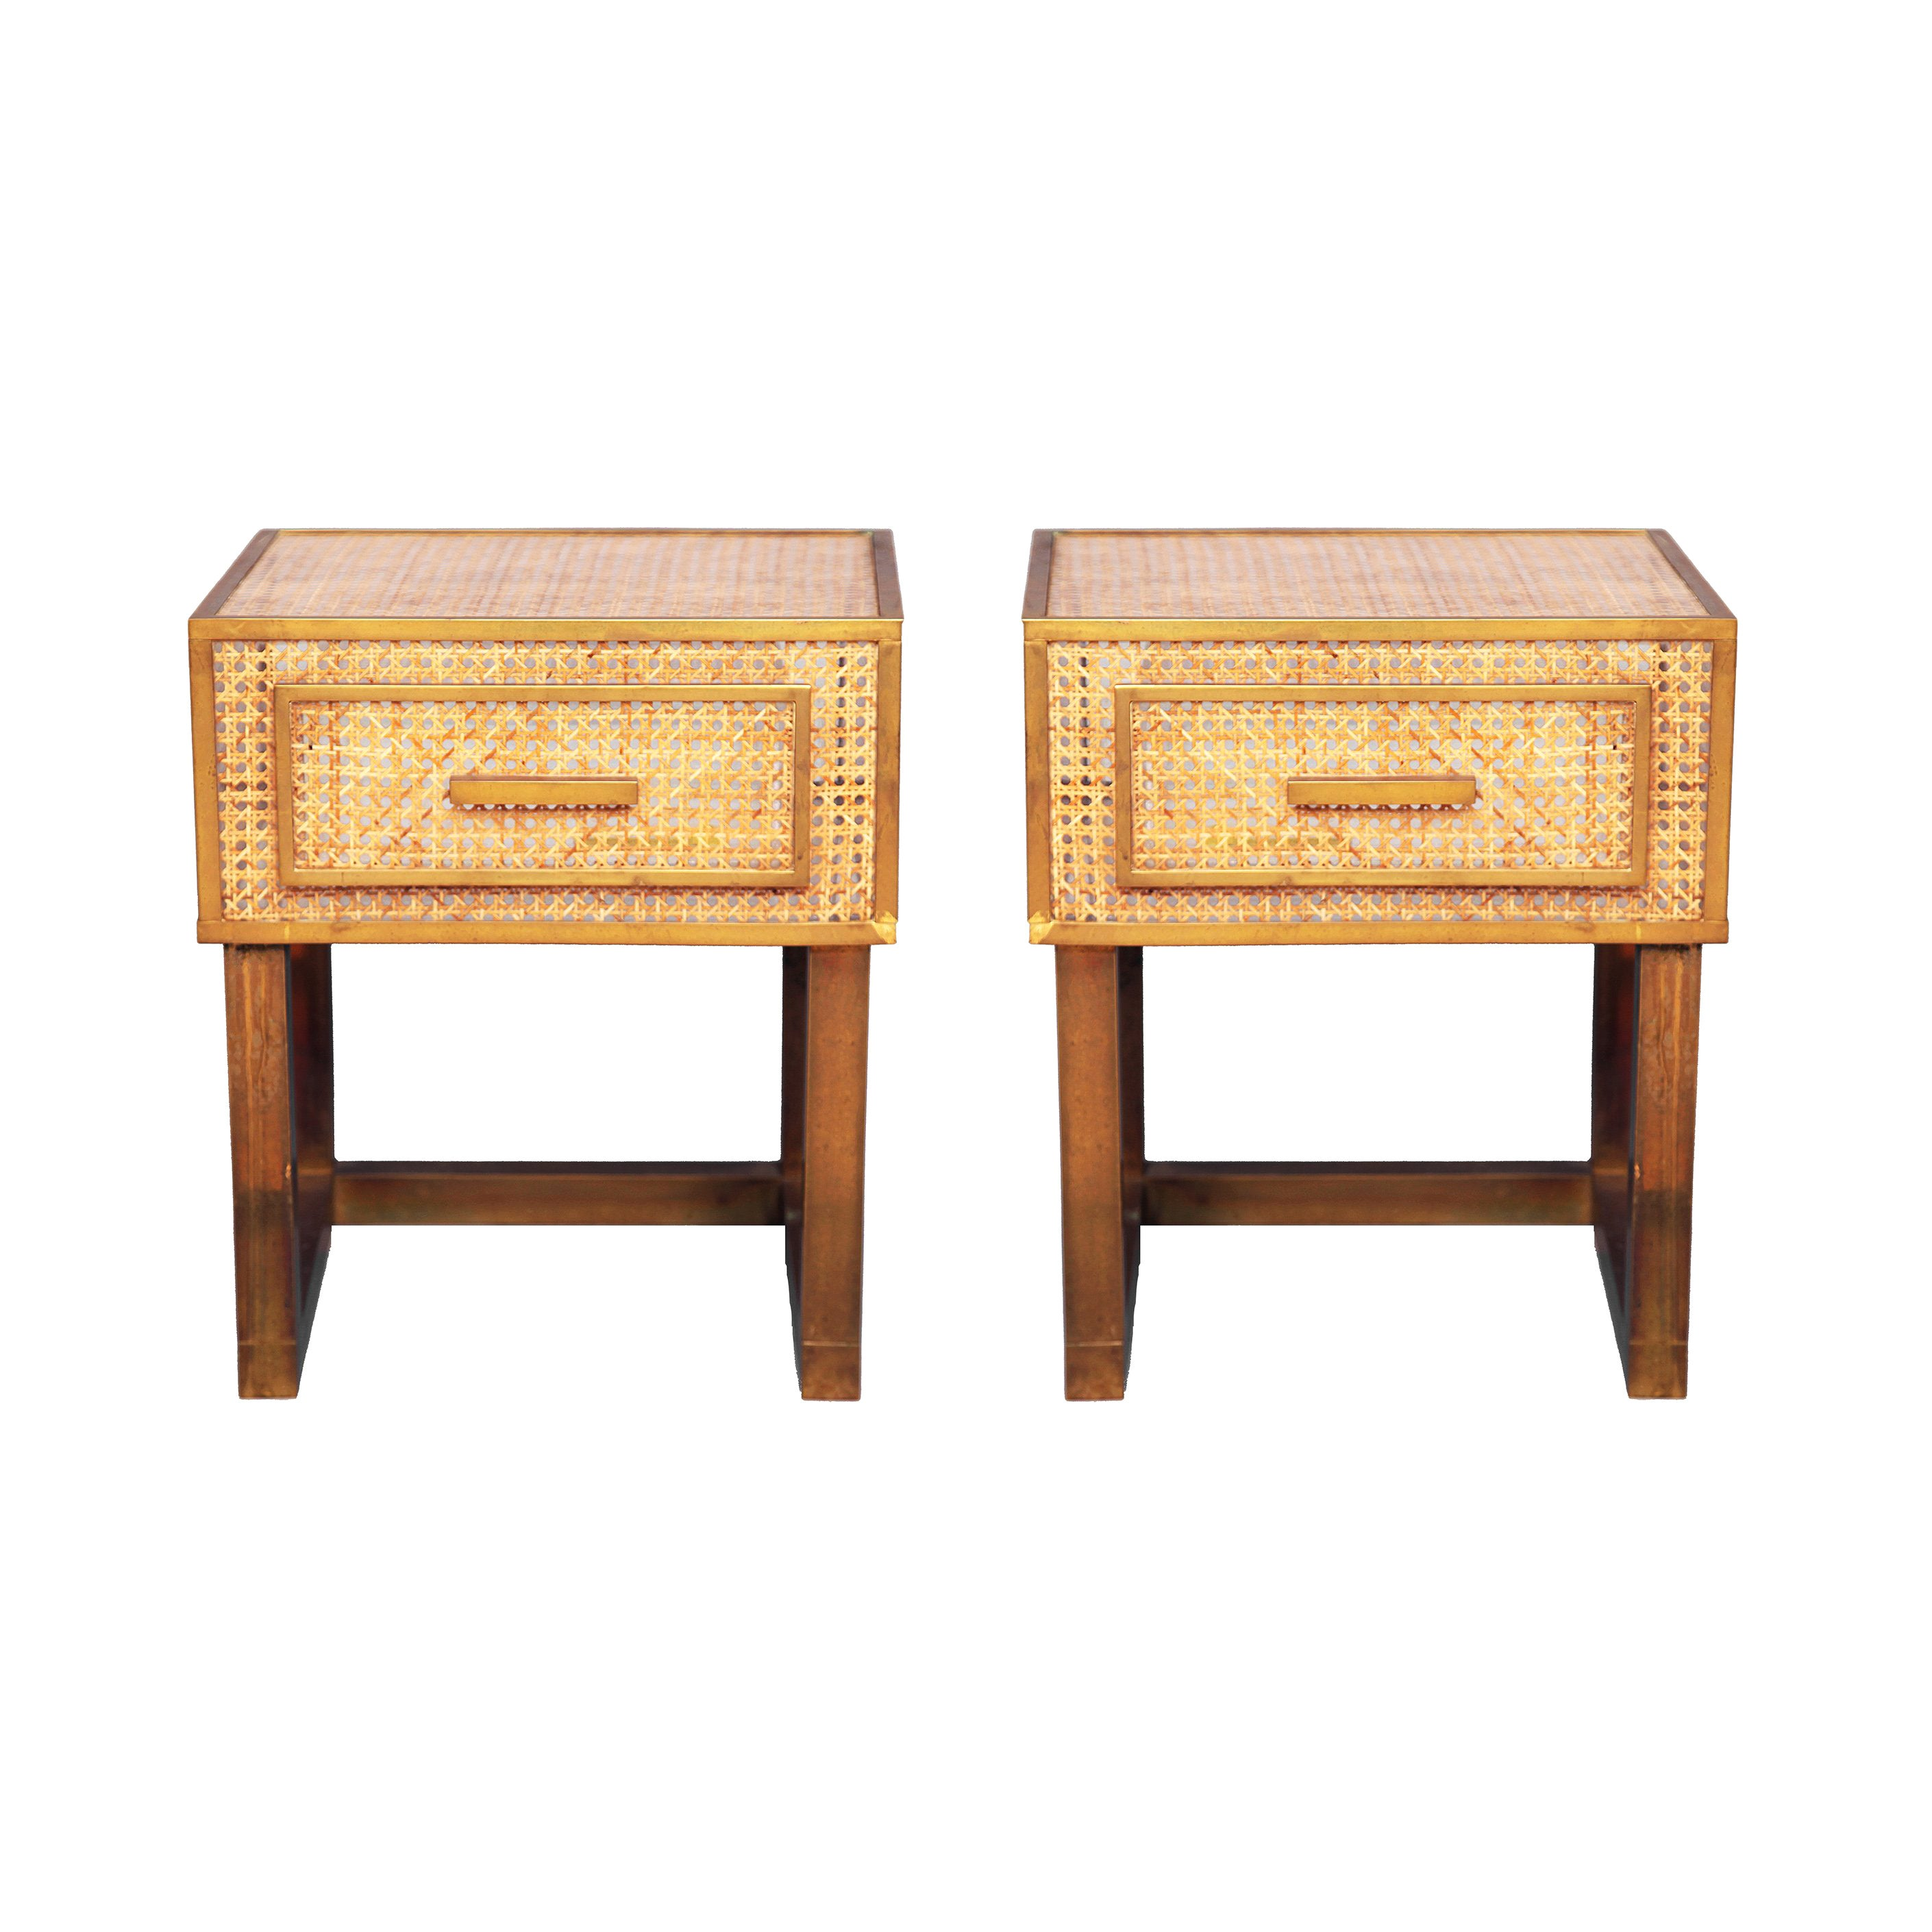 e2f657518e Dior Home Bedside Tables in Brass, Lucite, Rattan at 1stdibs